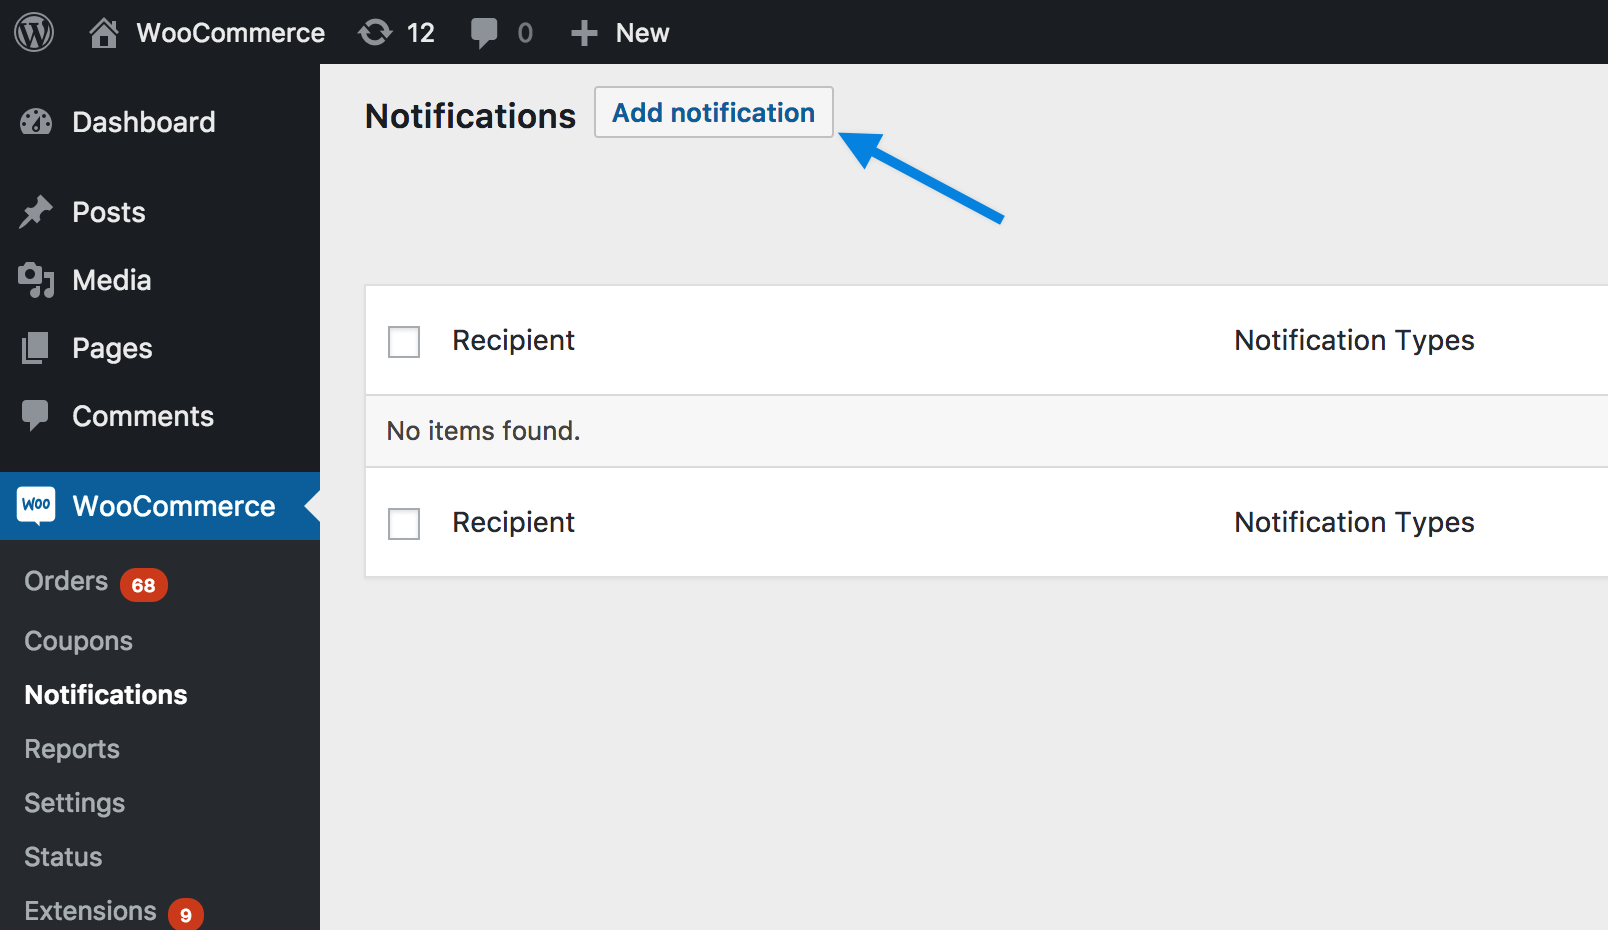 WooCommerce Advanced Notifications - Notifications Screen